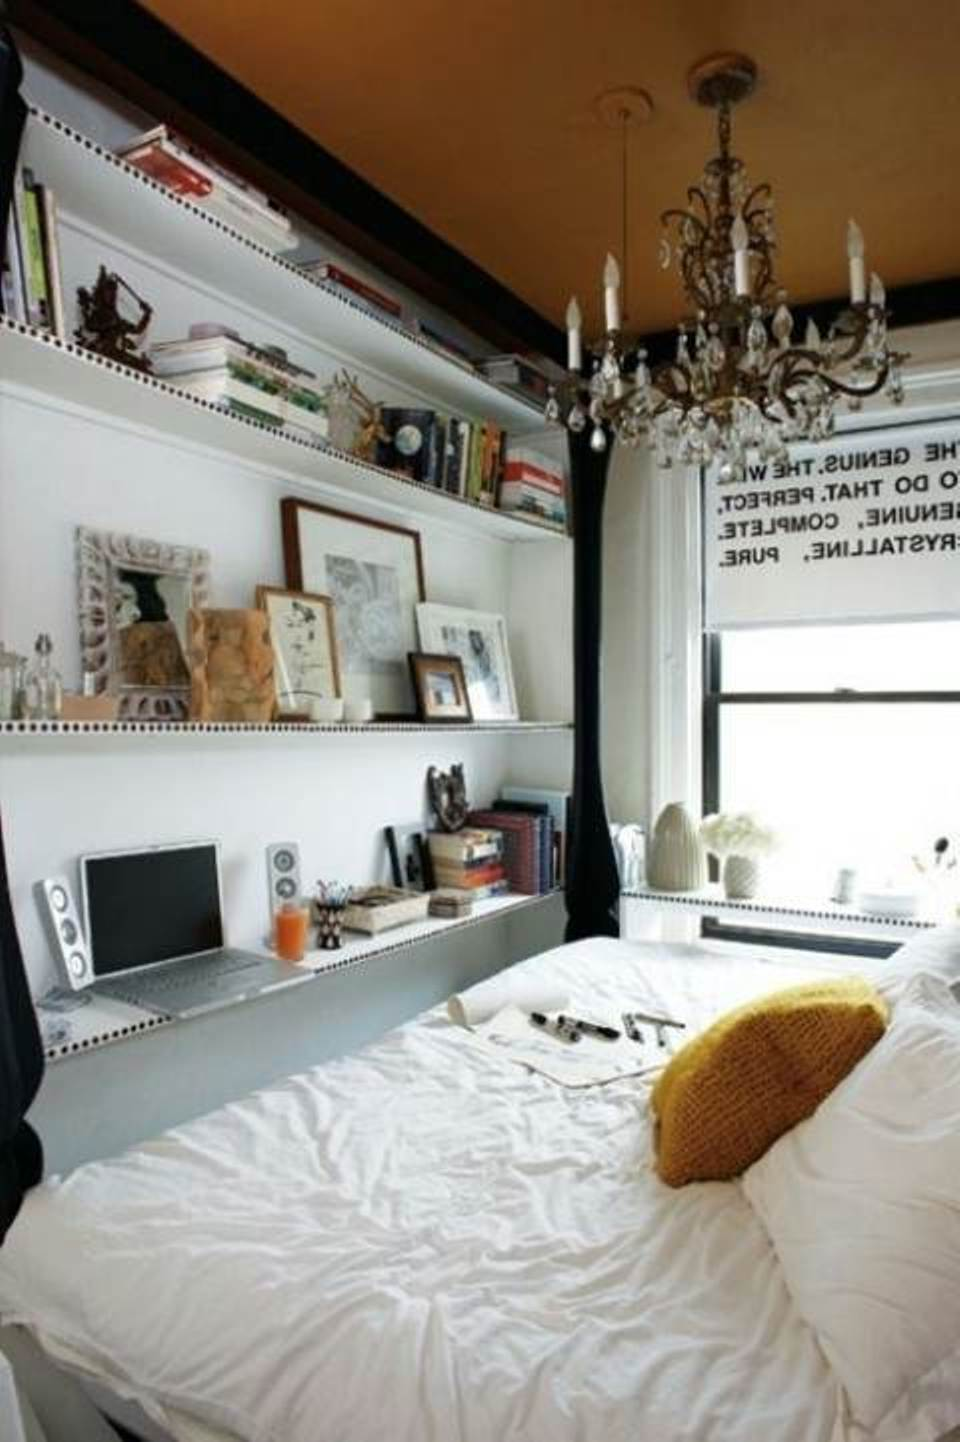 60 Bedroom Wall Design Ideas In Latest Trend - Decoration Love